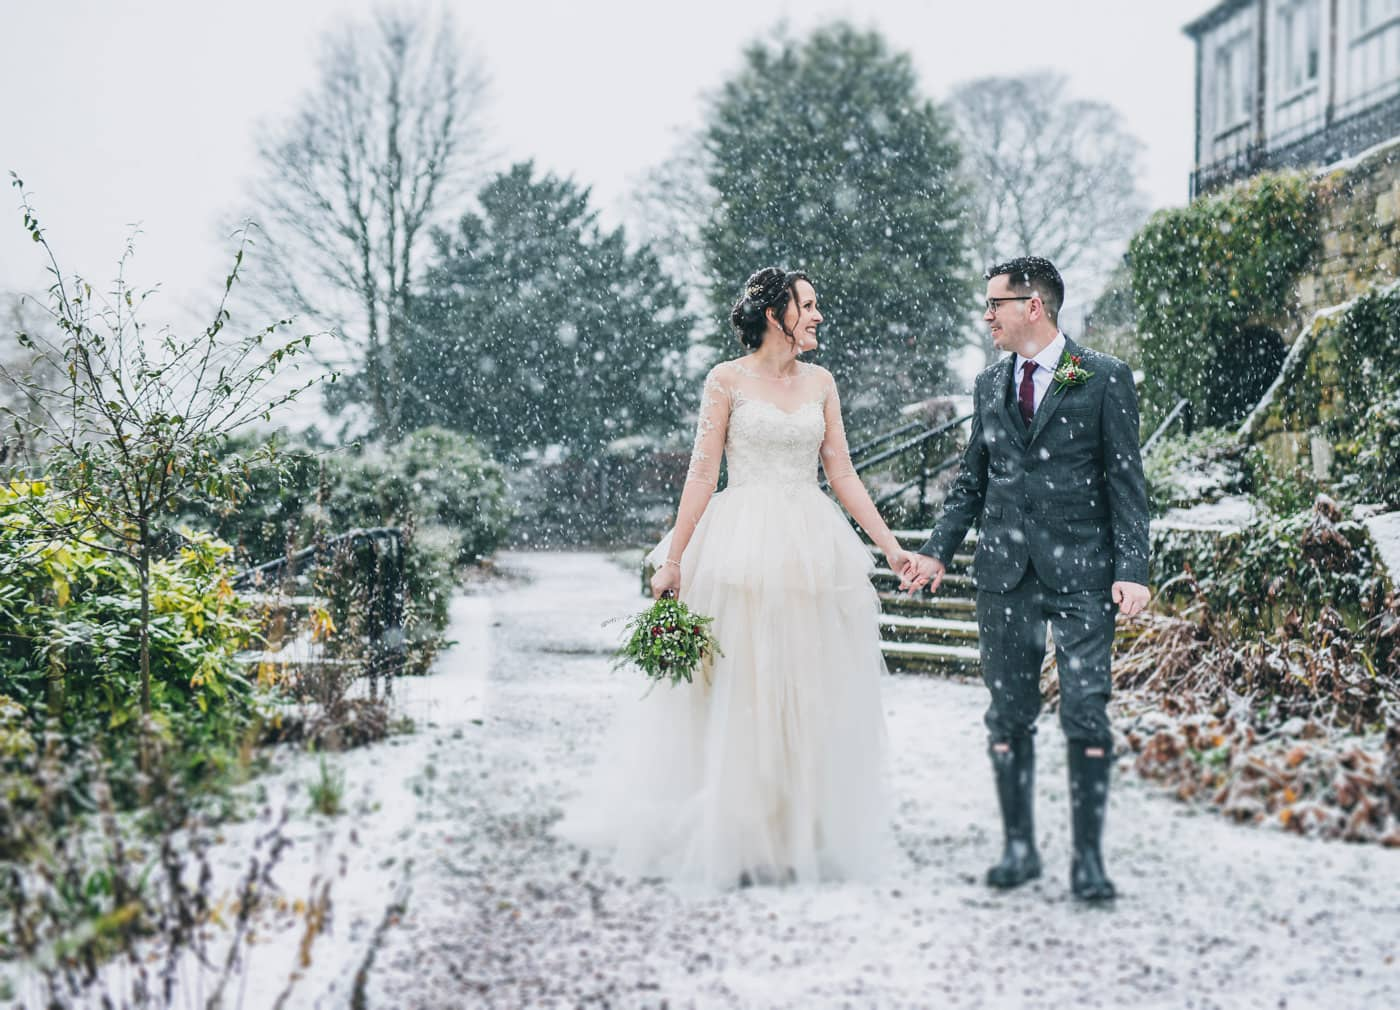 Winter Wedding Photography Is The Way To Go